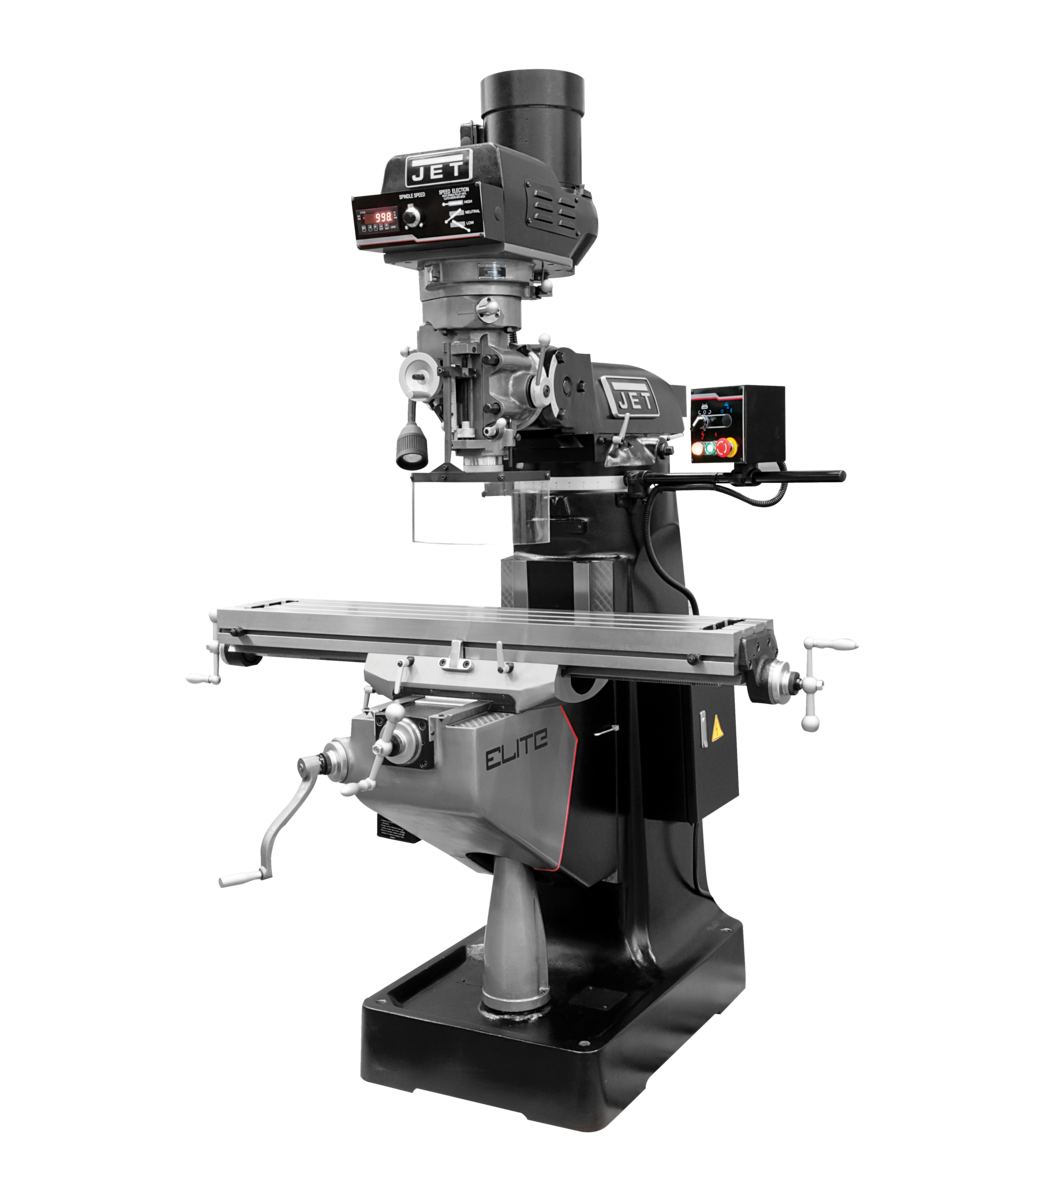 EVS-949 Mill with 3-Axis ACU-RITE 303(Quill) DRO and Servo X, Y, Z-Axis Powerfeeds